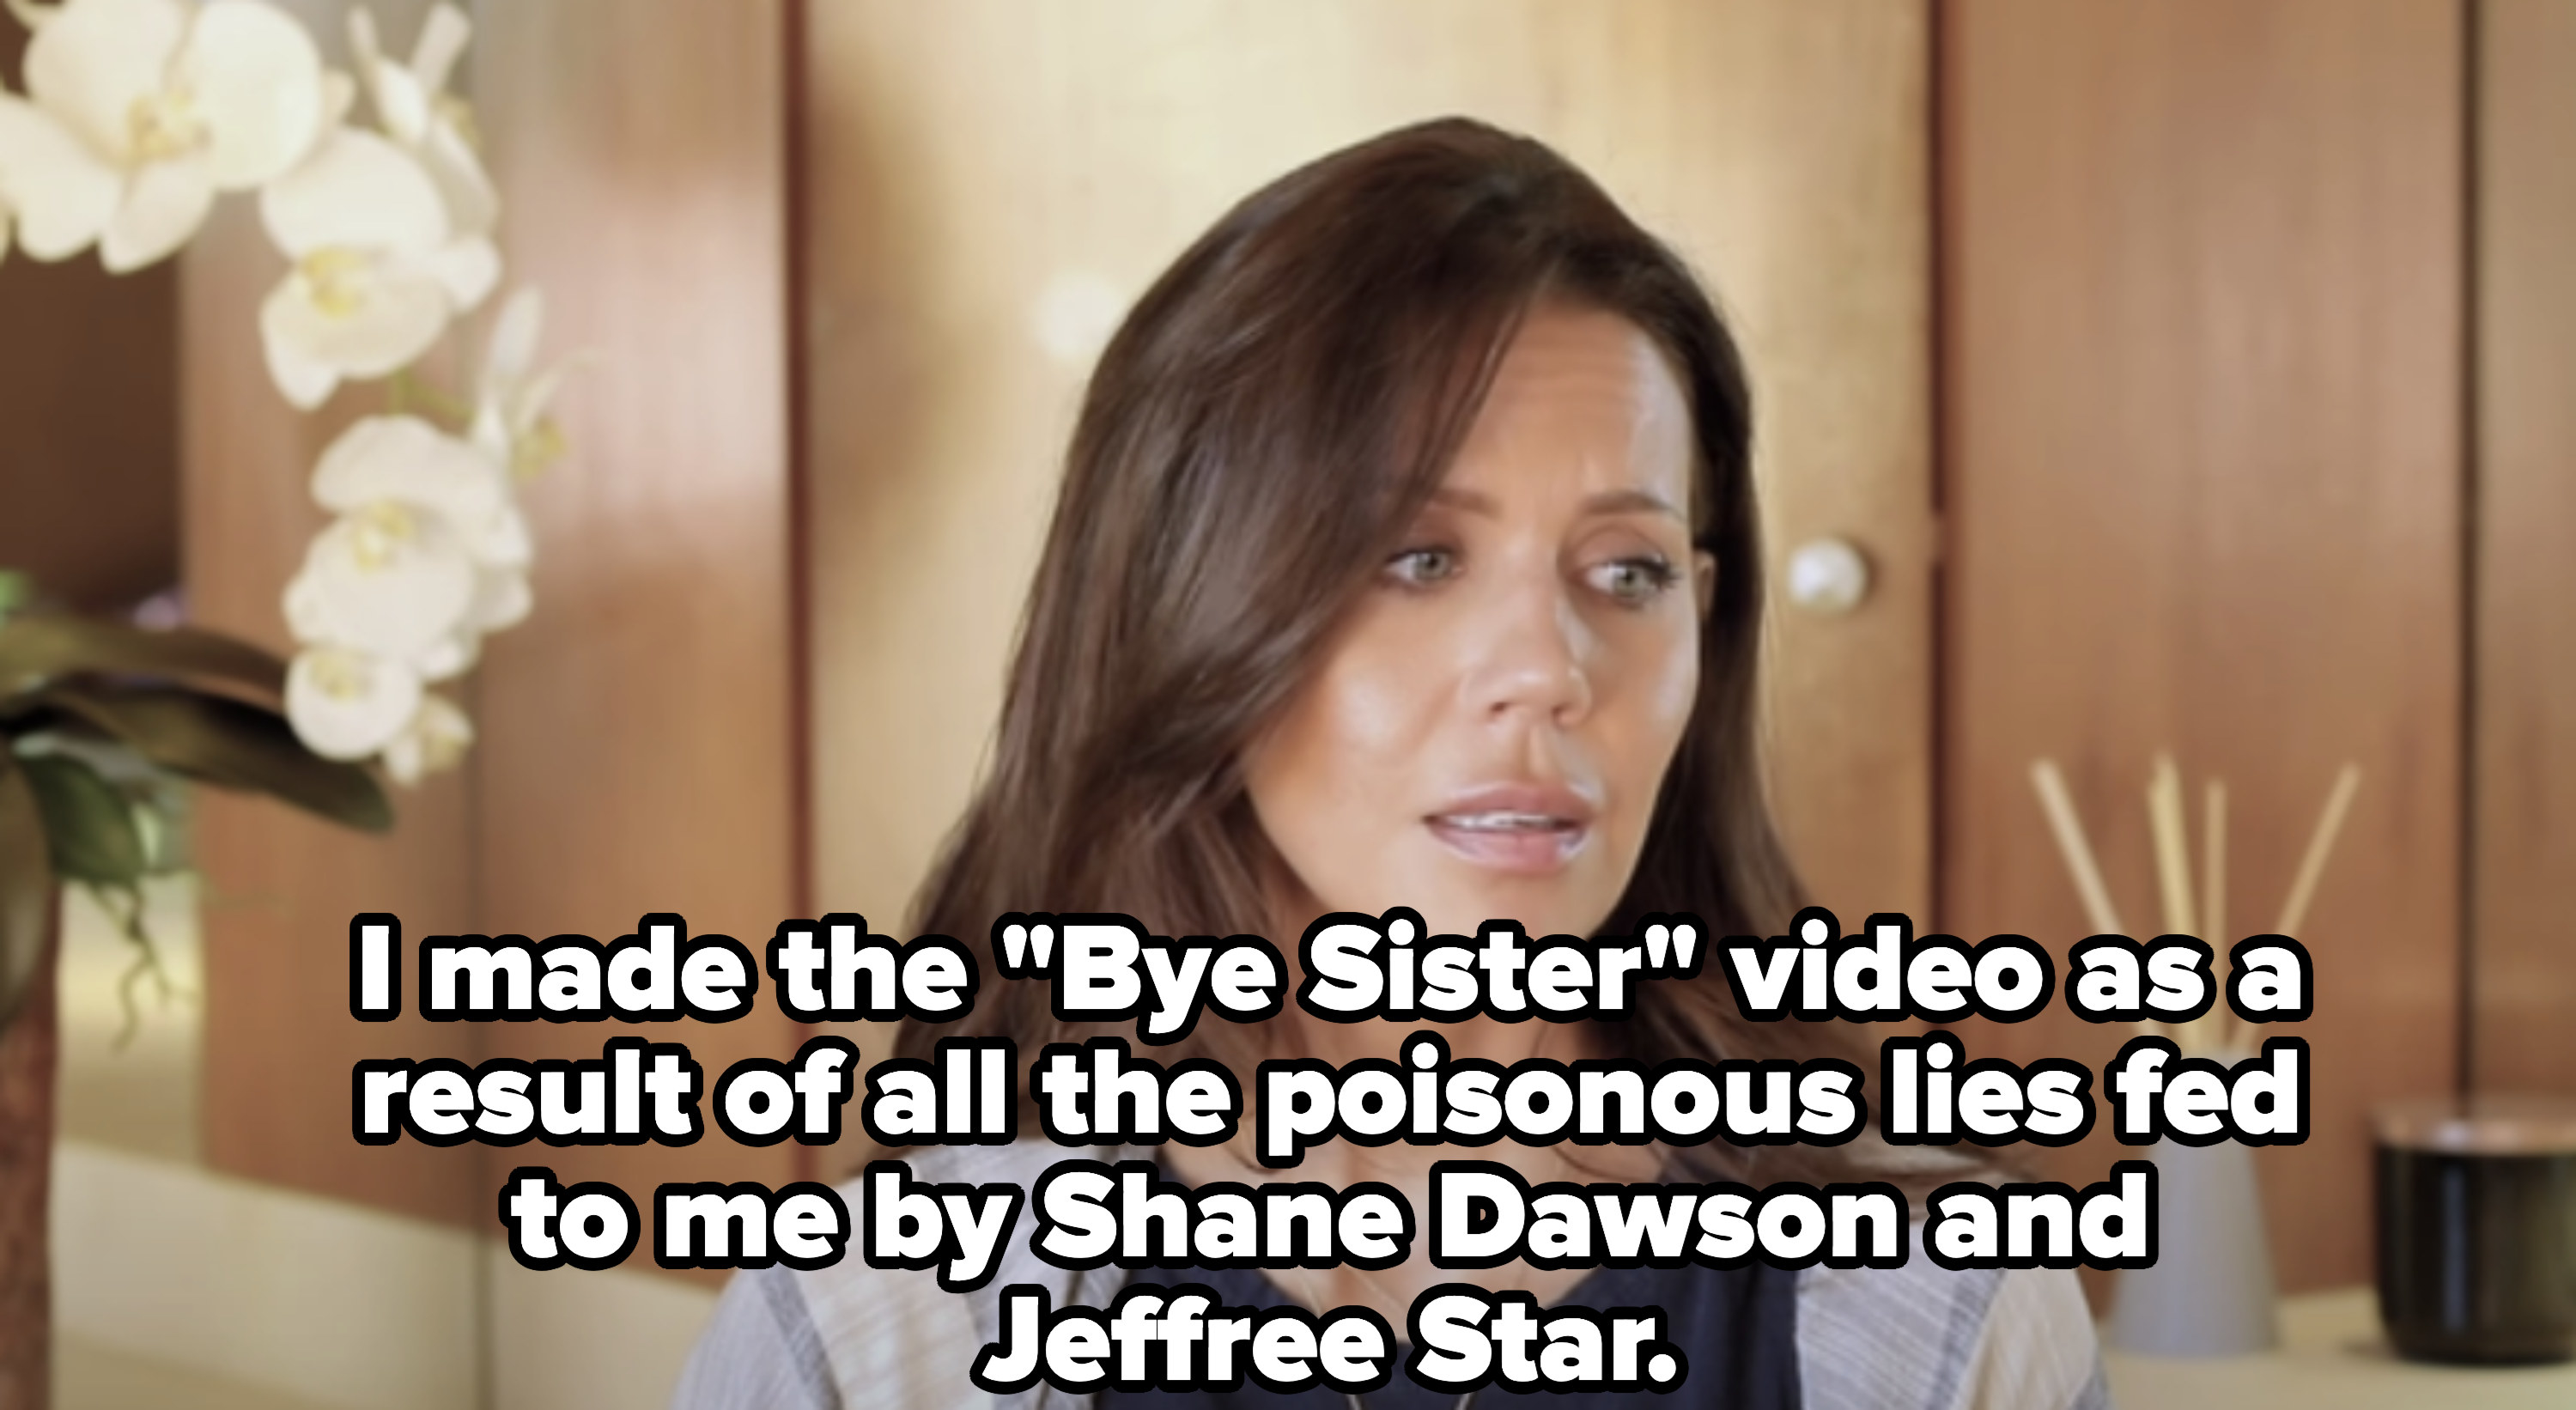 """She said, """"I made the 'Bye Sister' video as a result of all the poisonous lies fed to me by Shane Dawson and Jeffree Star."""""""